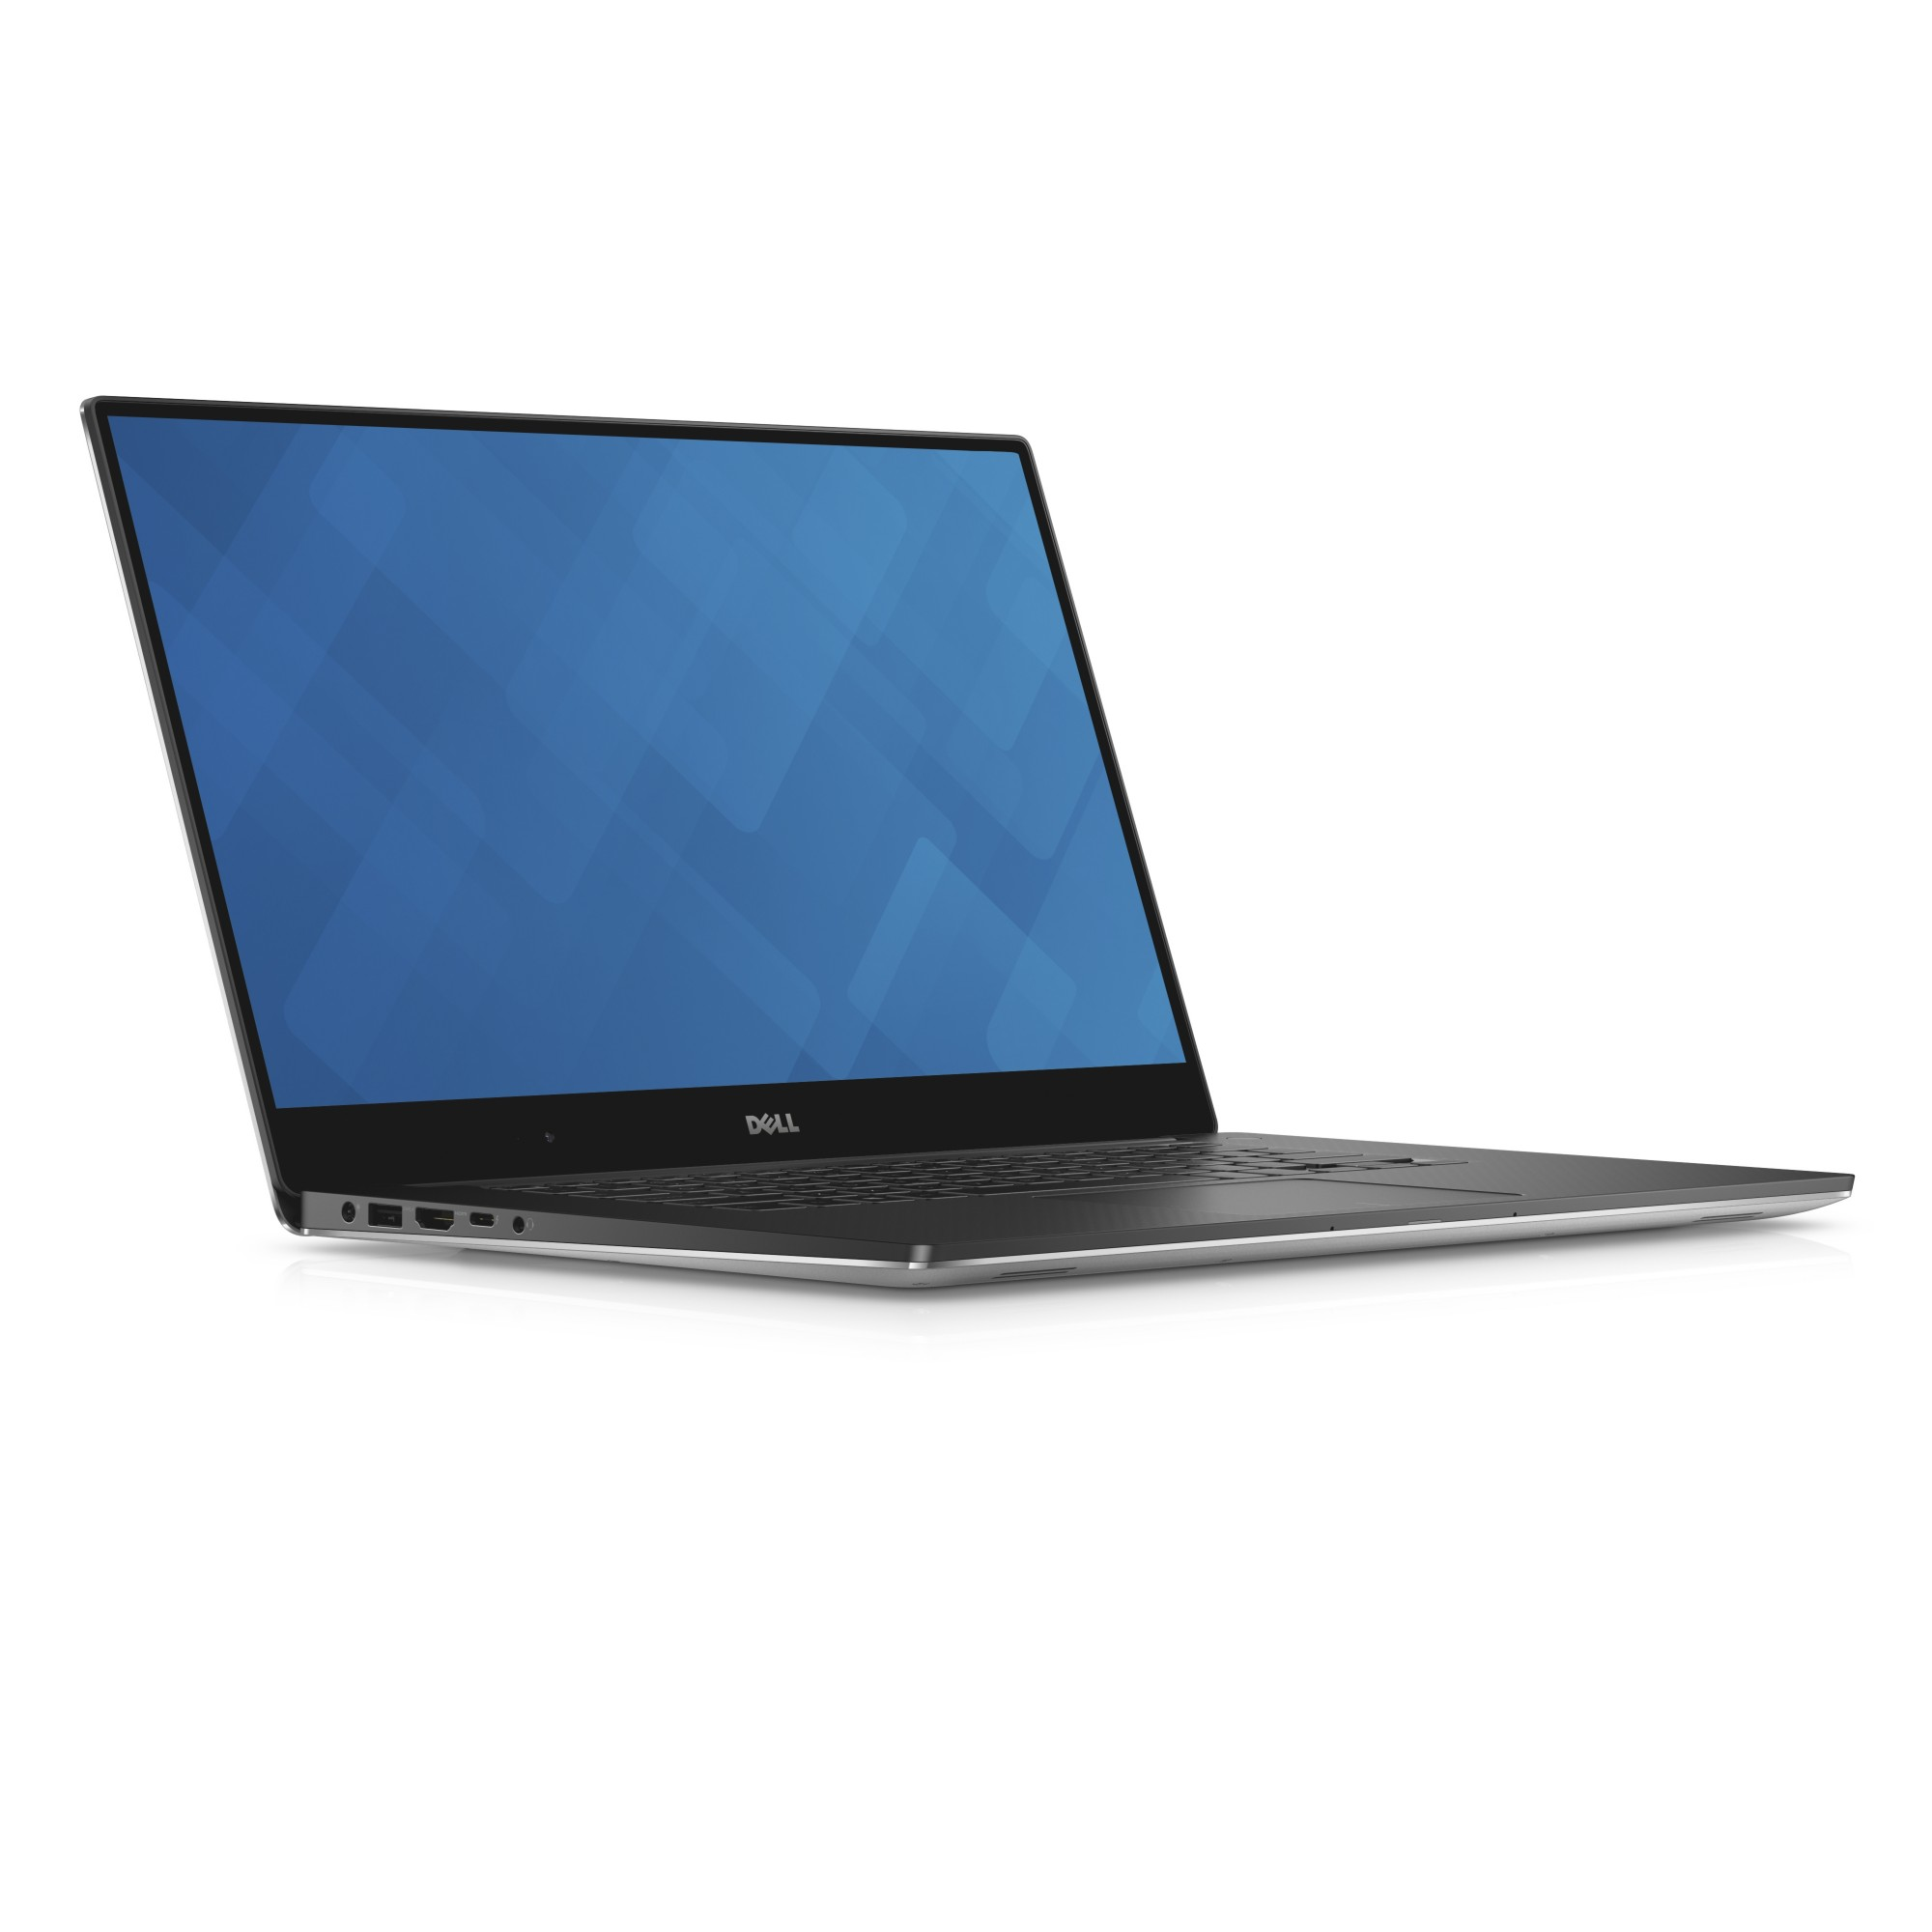 DELL 9560 2.5GHZ I5-7300HQ 15.6